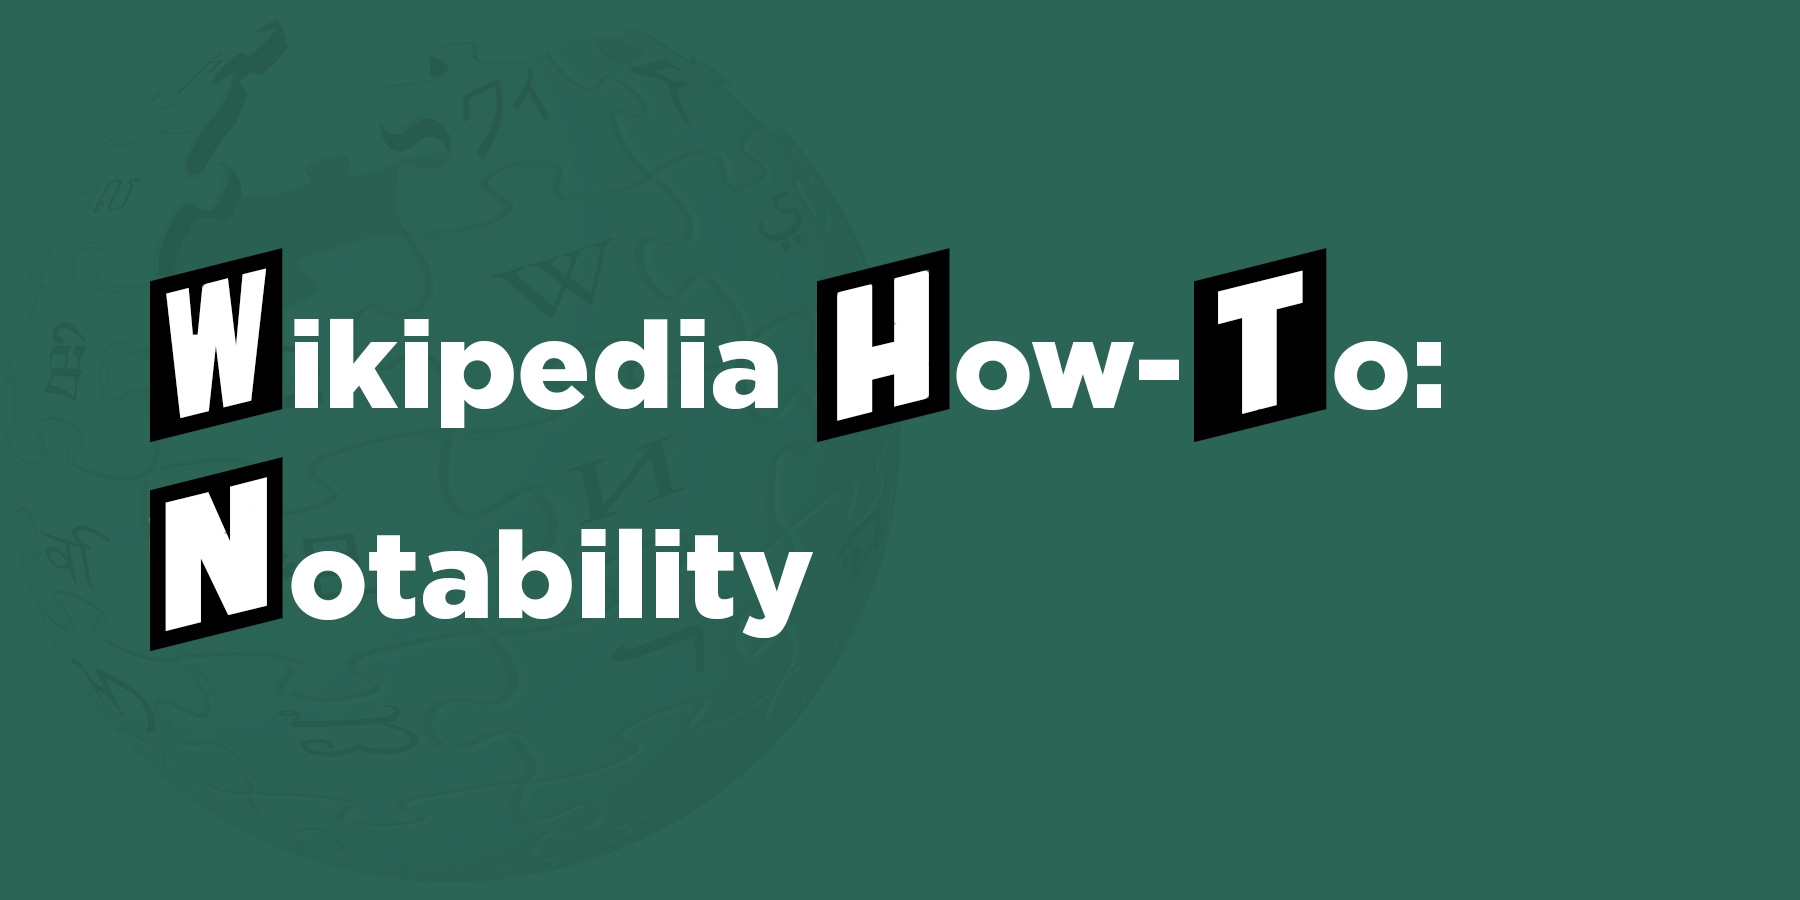 Wikipedia How-To: Notability